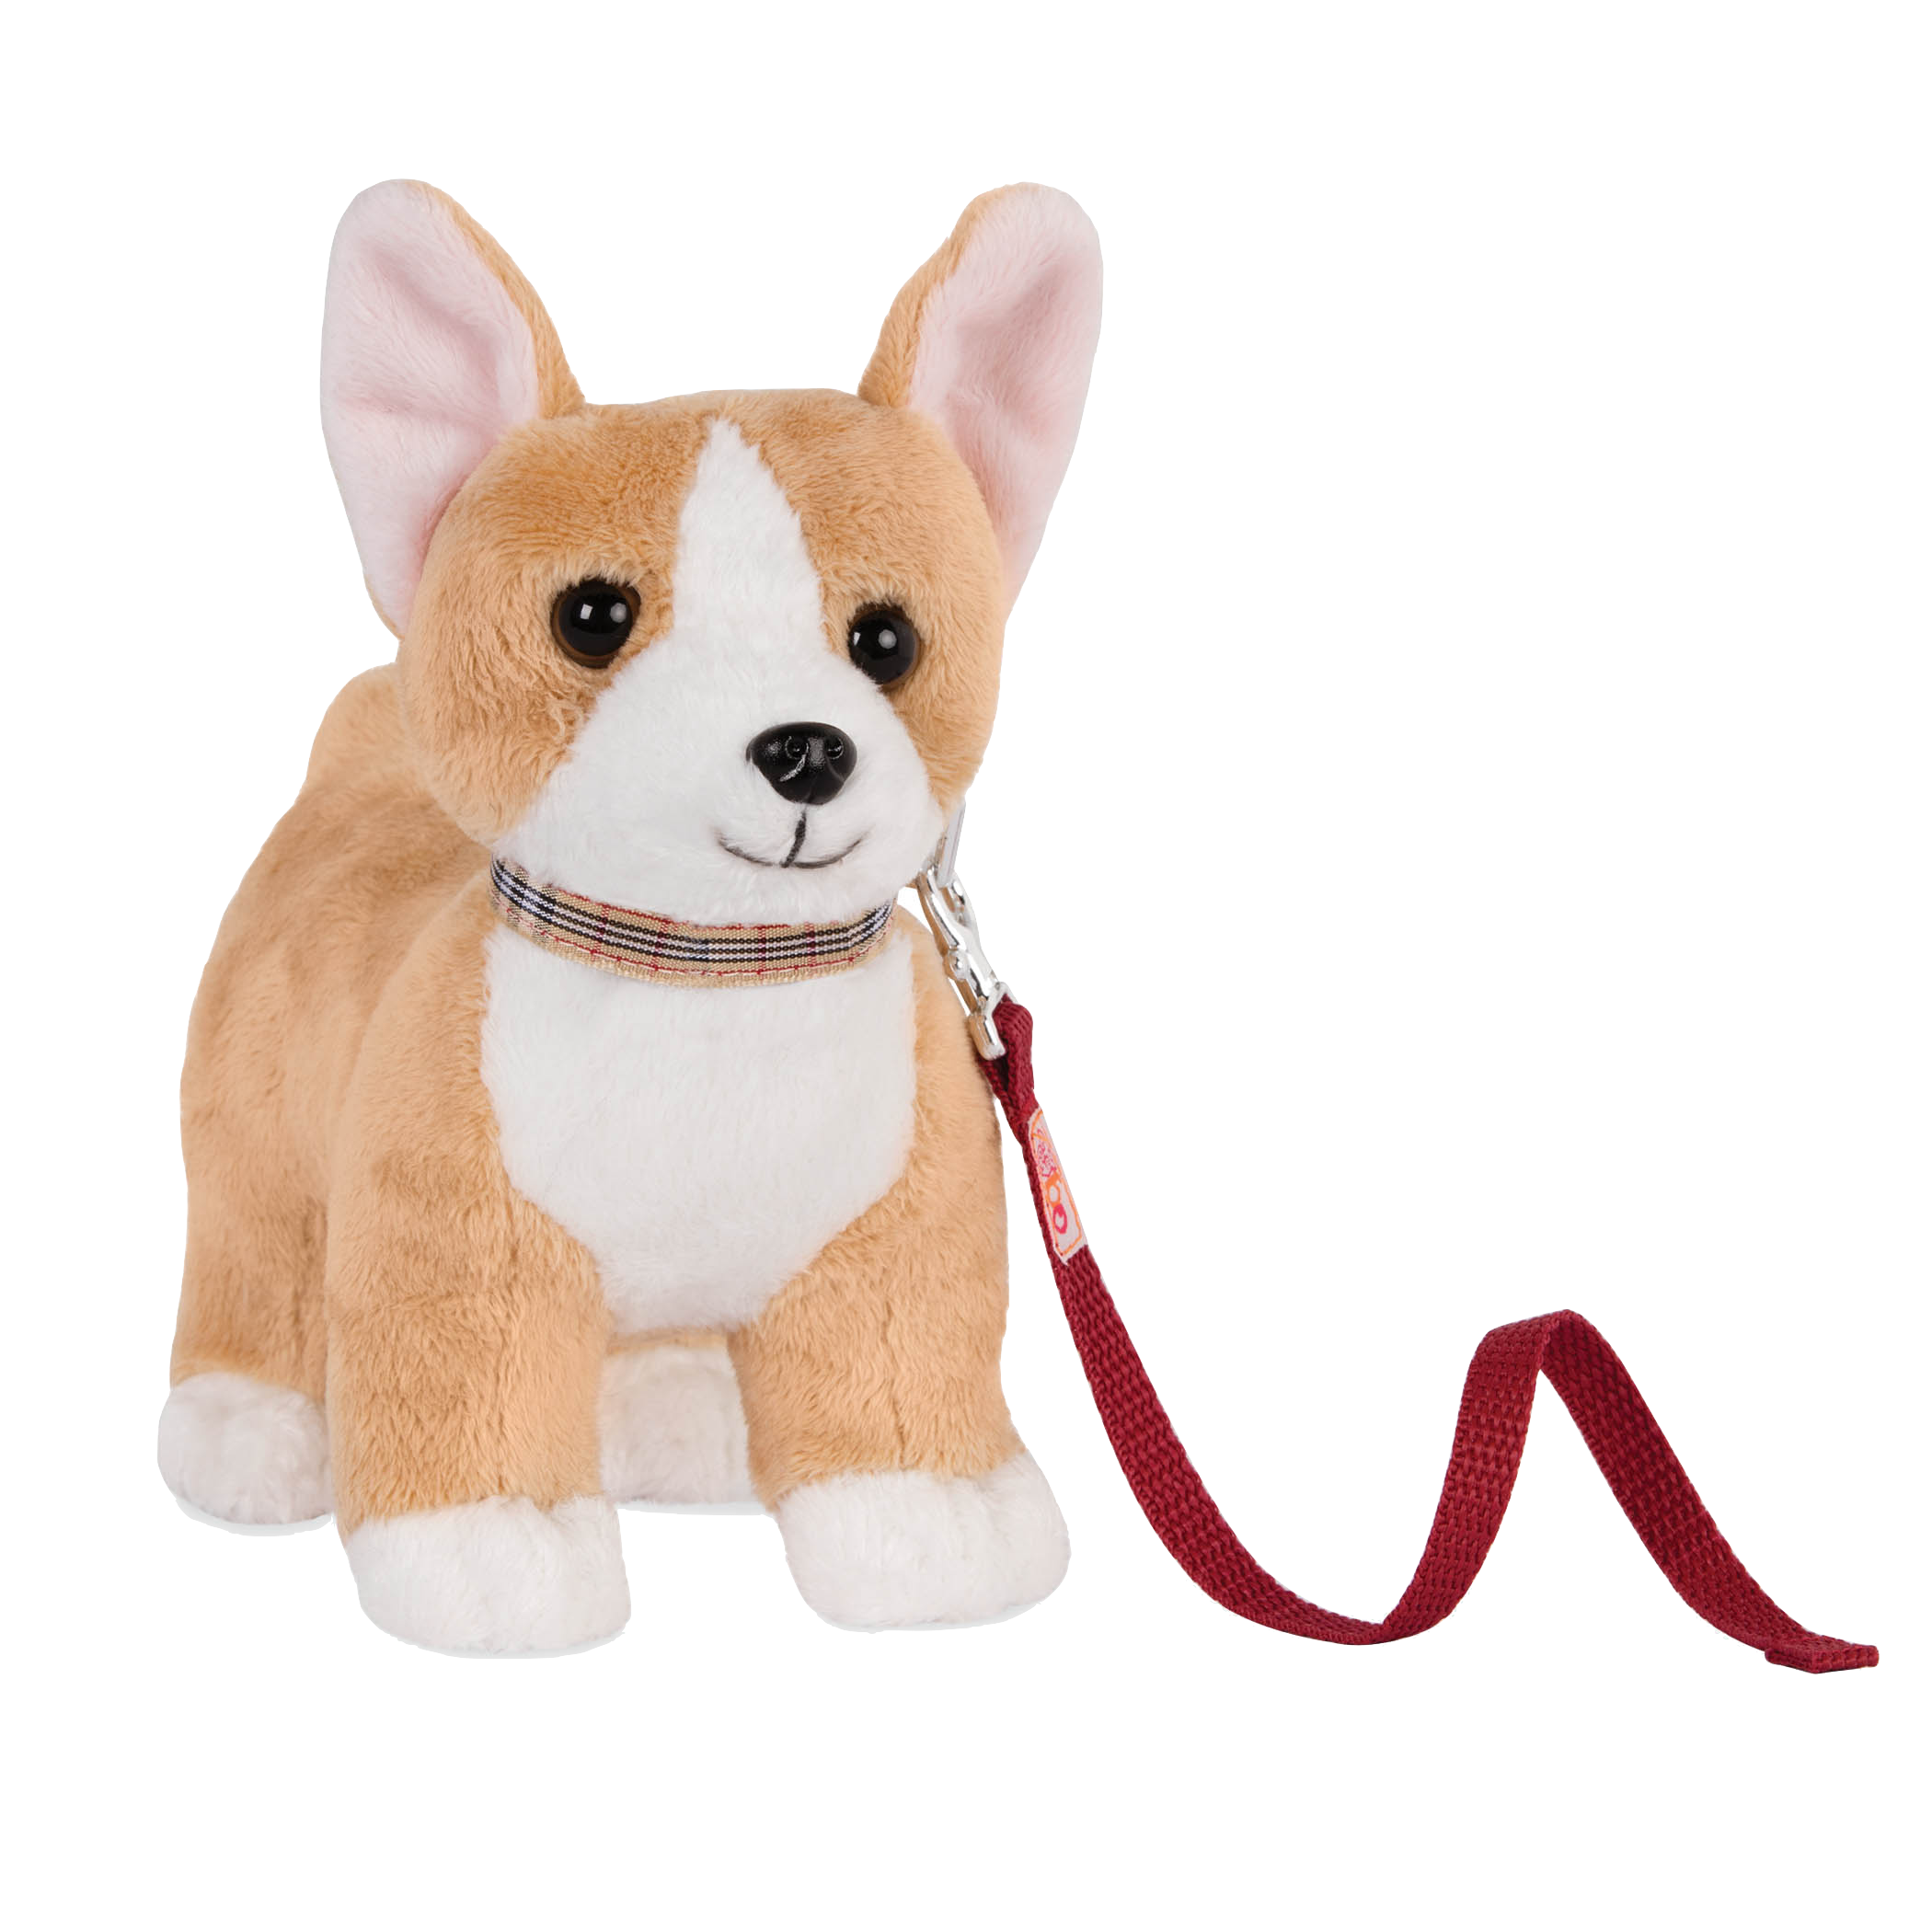 Corgi posing with front paws bent